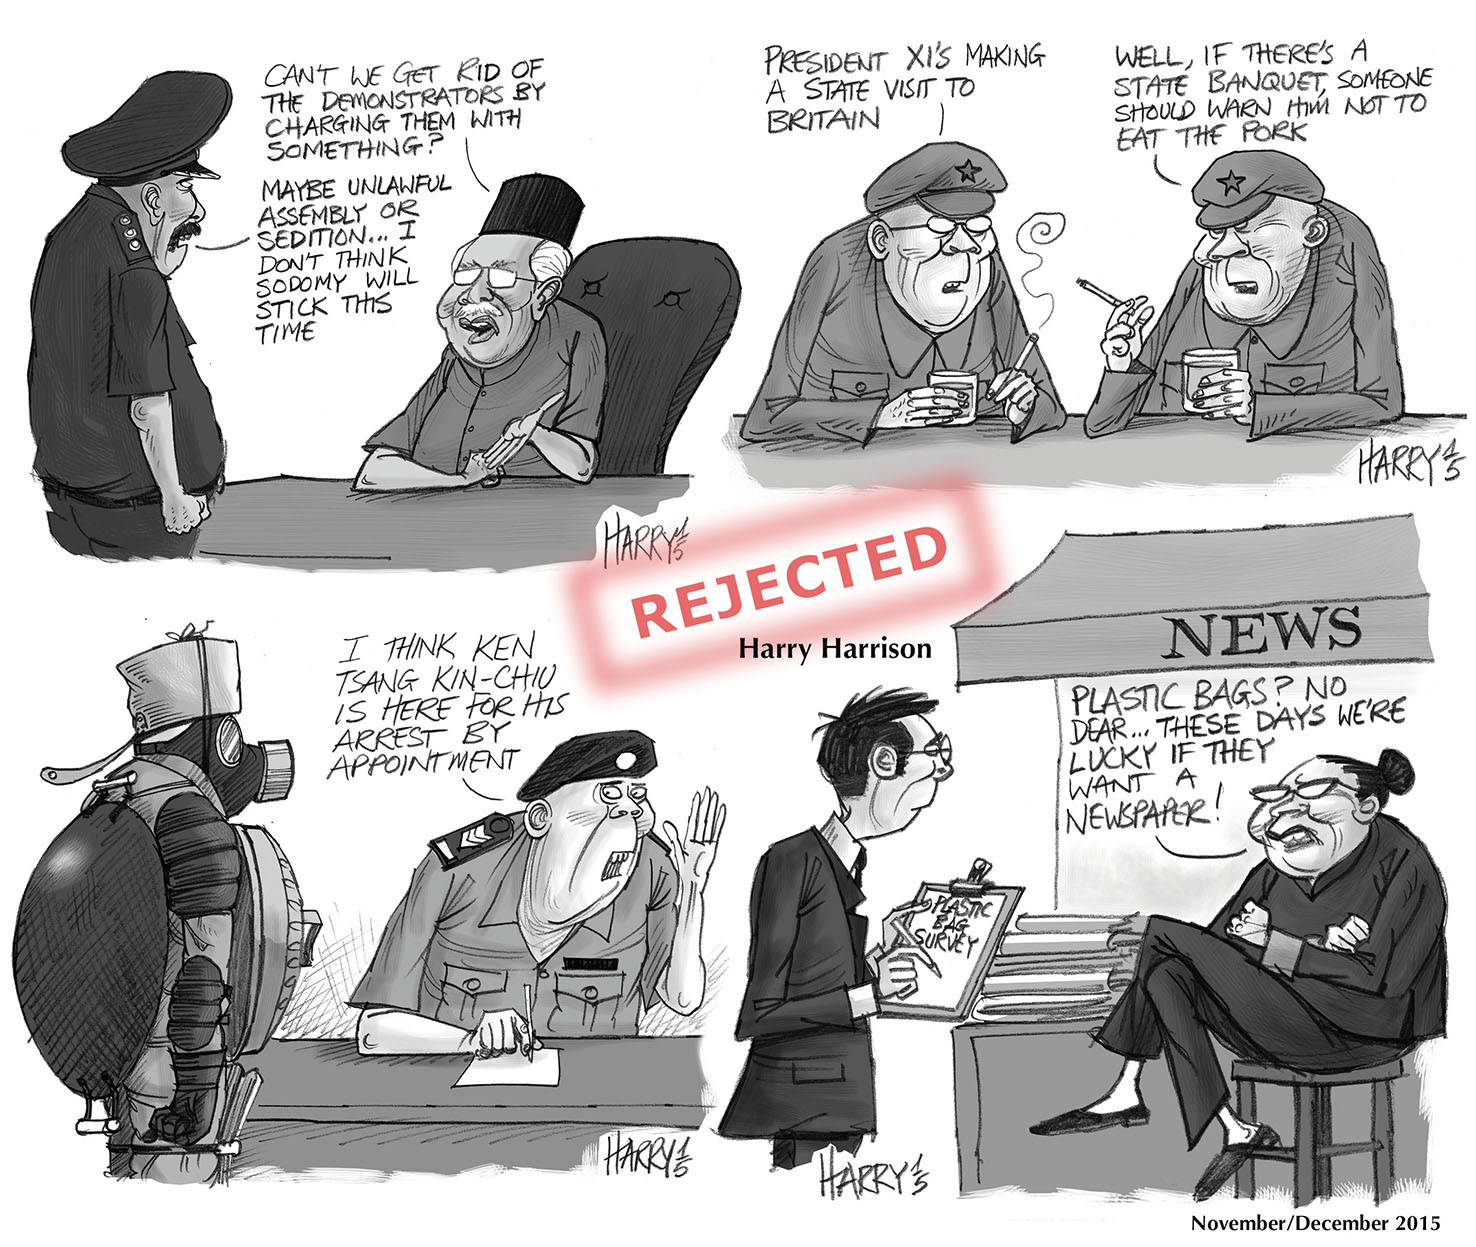 Nov-Dec 2015 Harry's reject